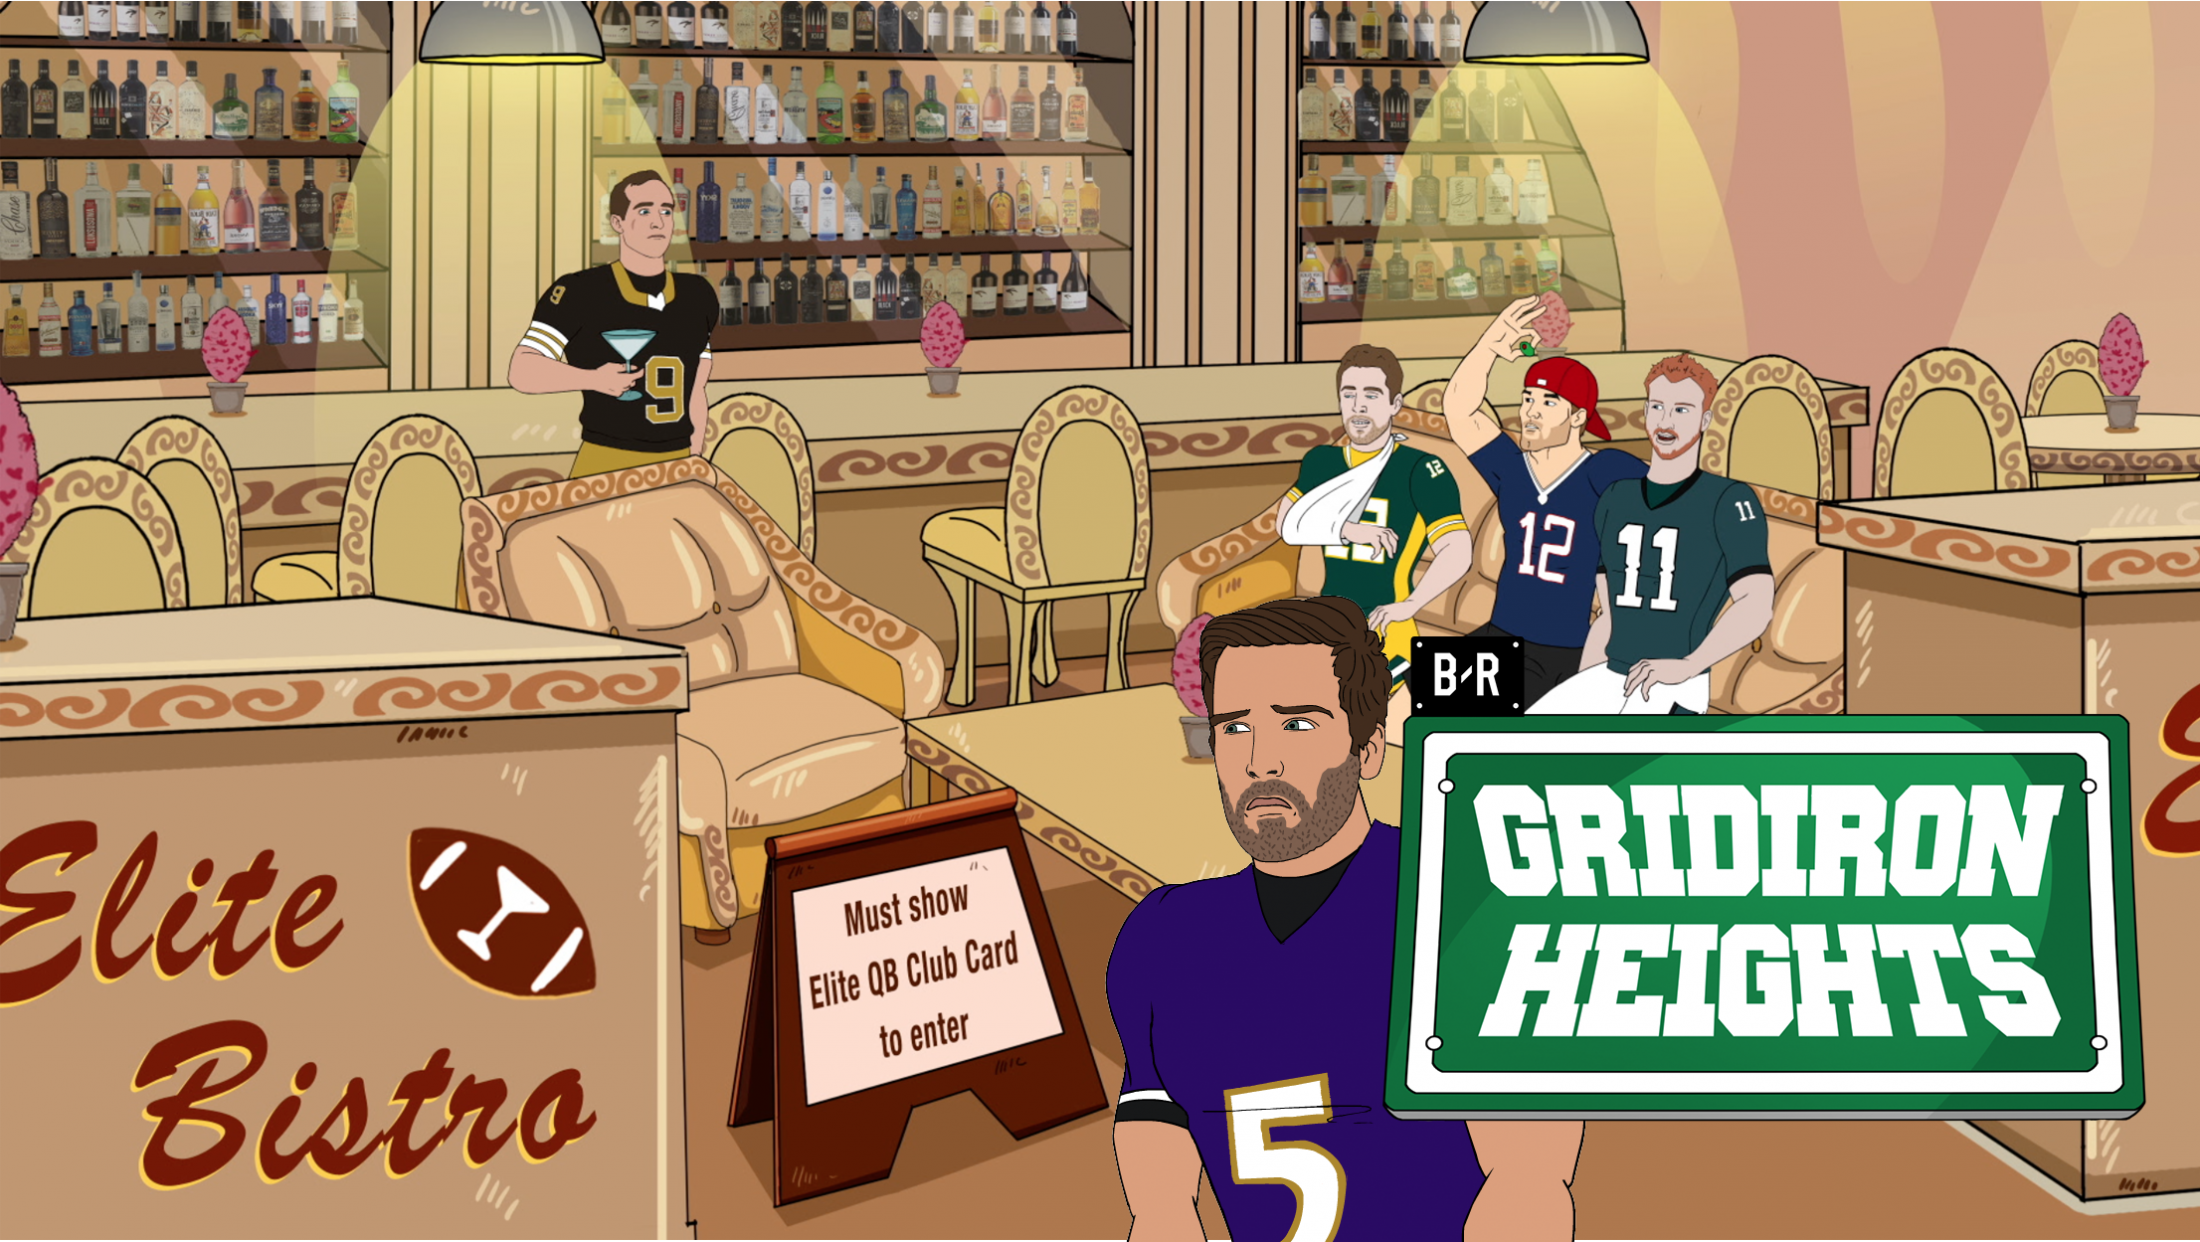 Thumbnail for Gridiron Heights